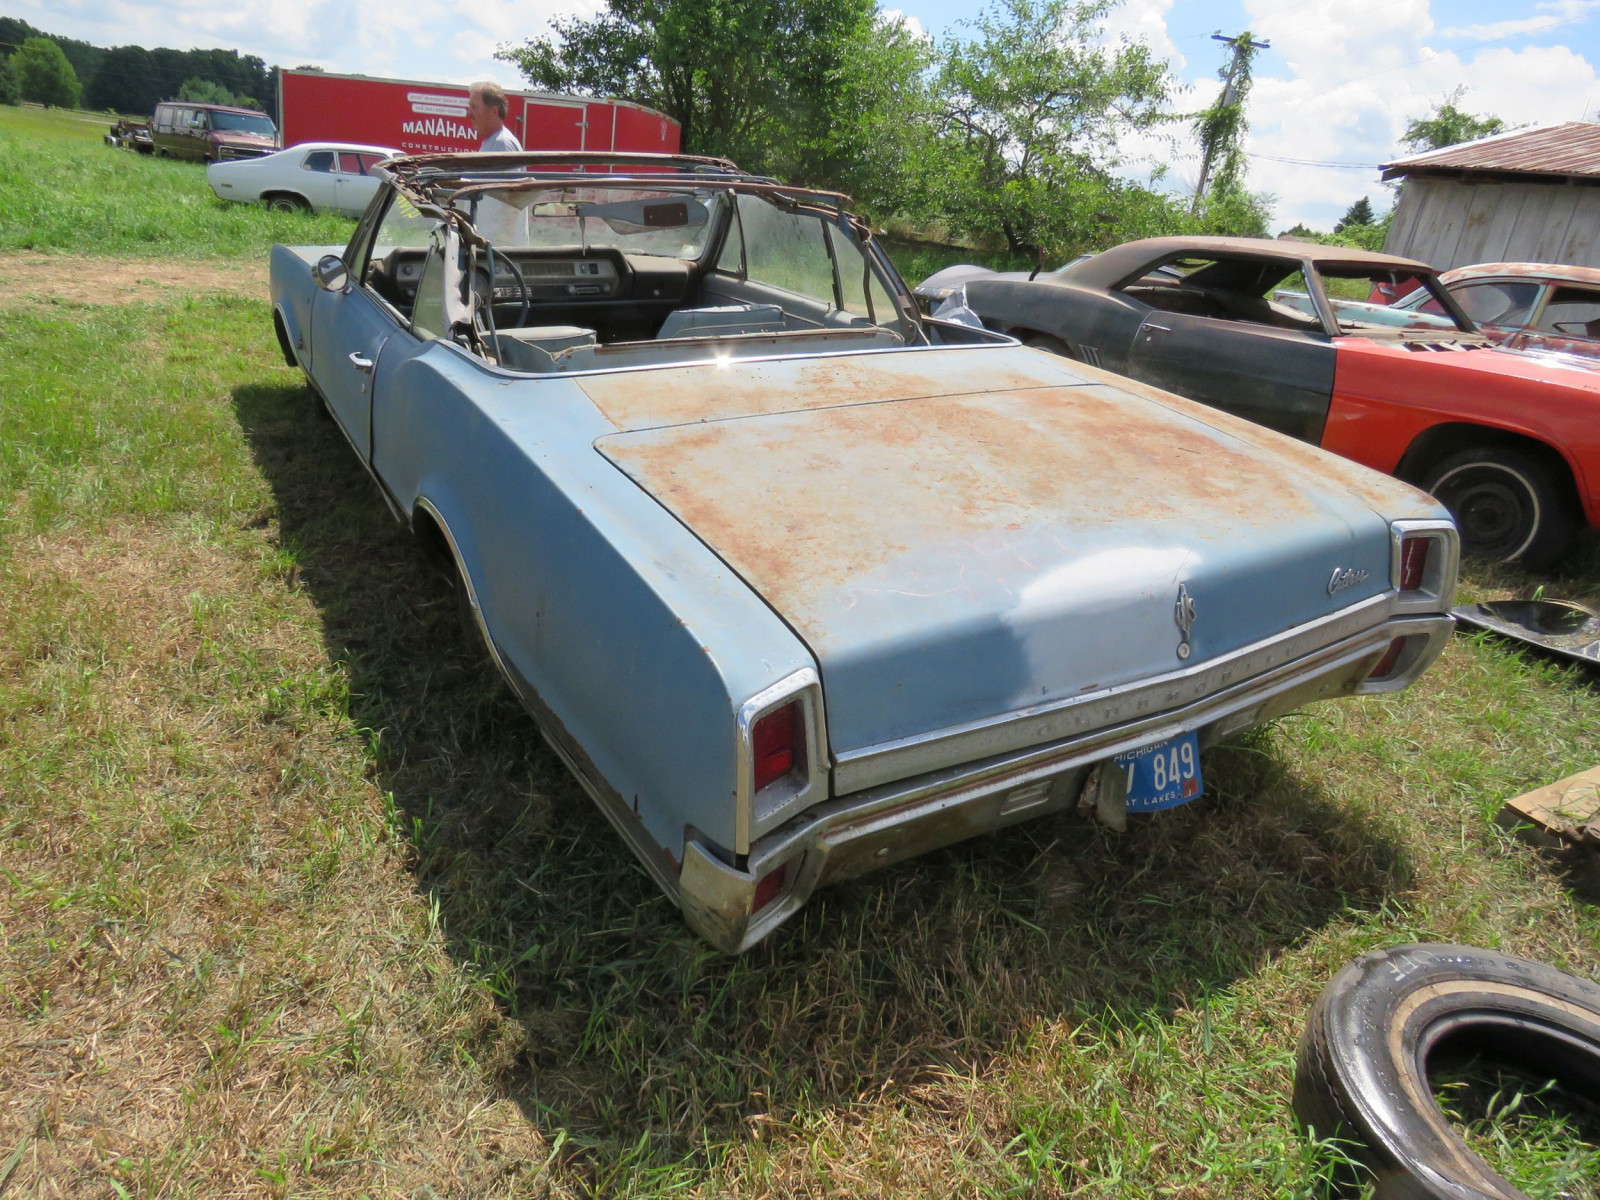 1967 Oldsmobile Cutlas Convertible Parts Car - Image 5